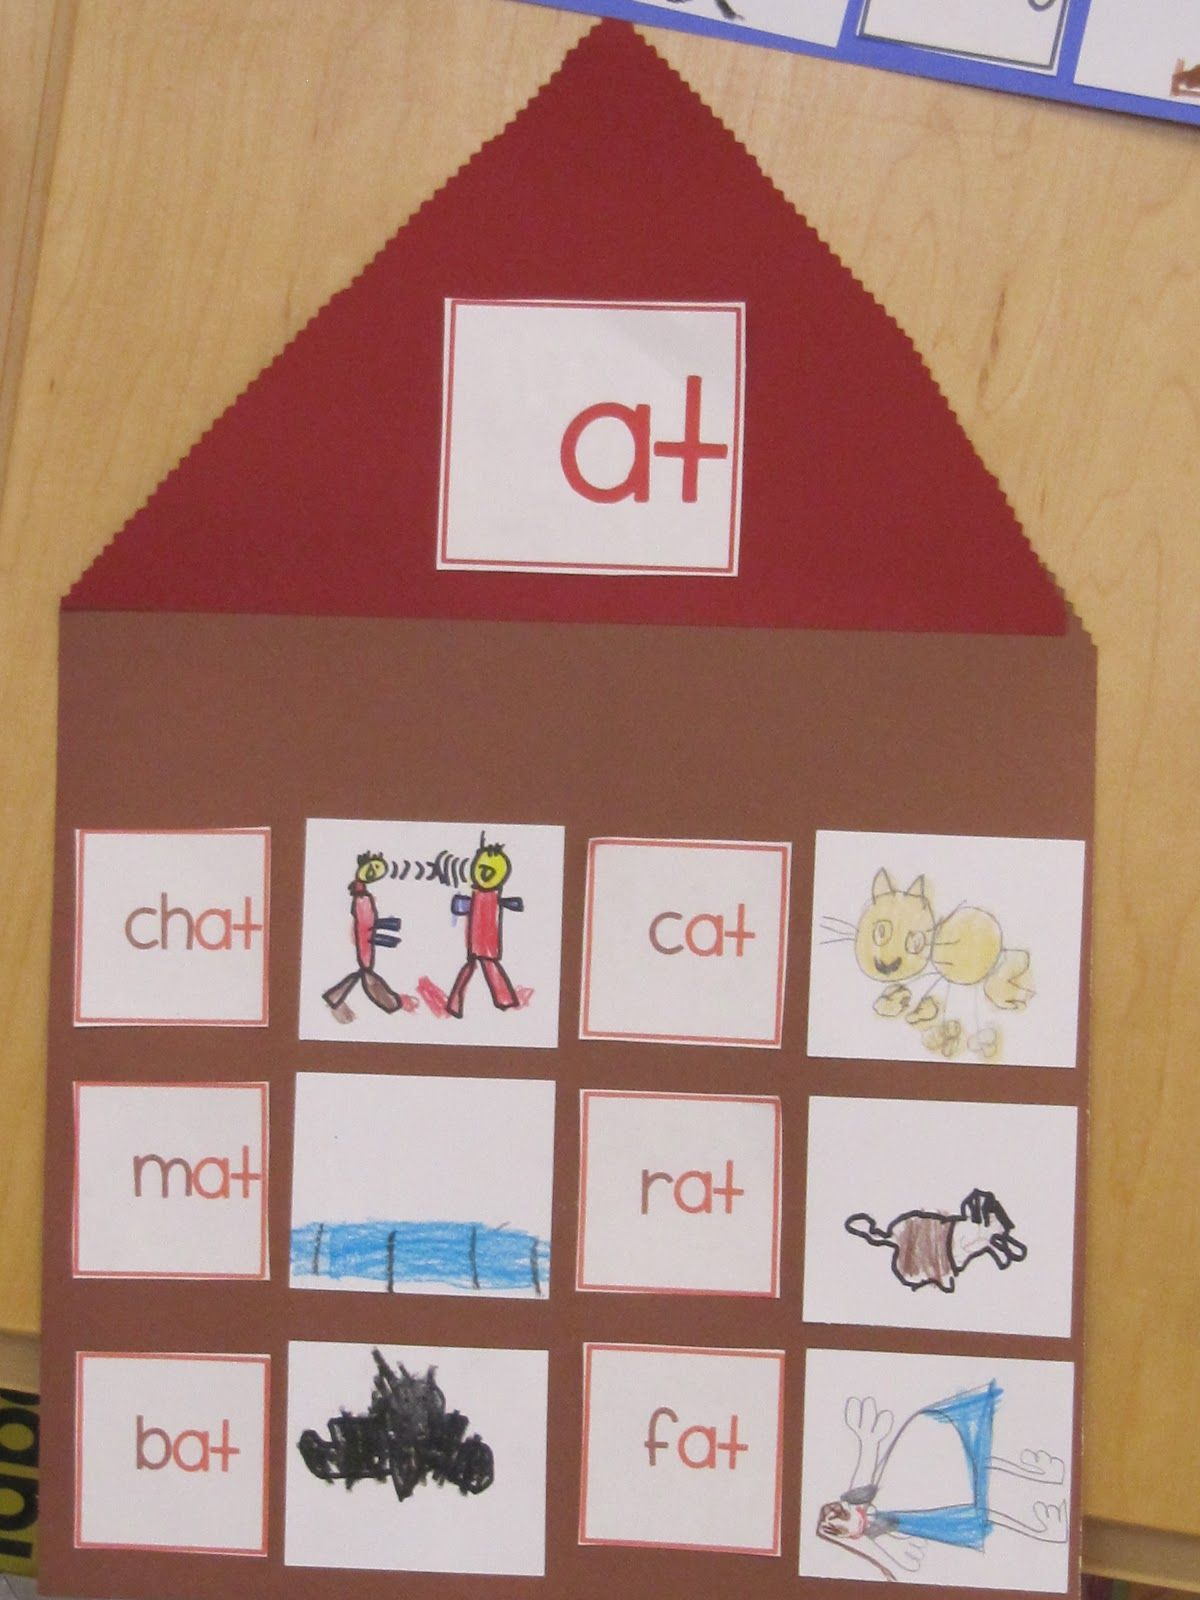 Word Family Houses The Kids Make The Pictures To Illustrate The Rhyming Words